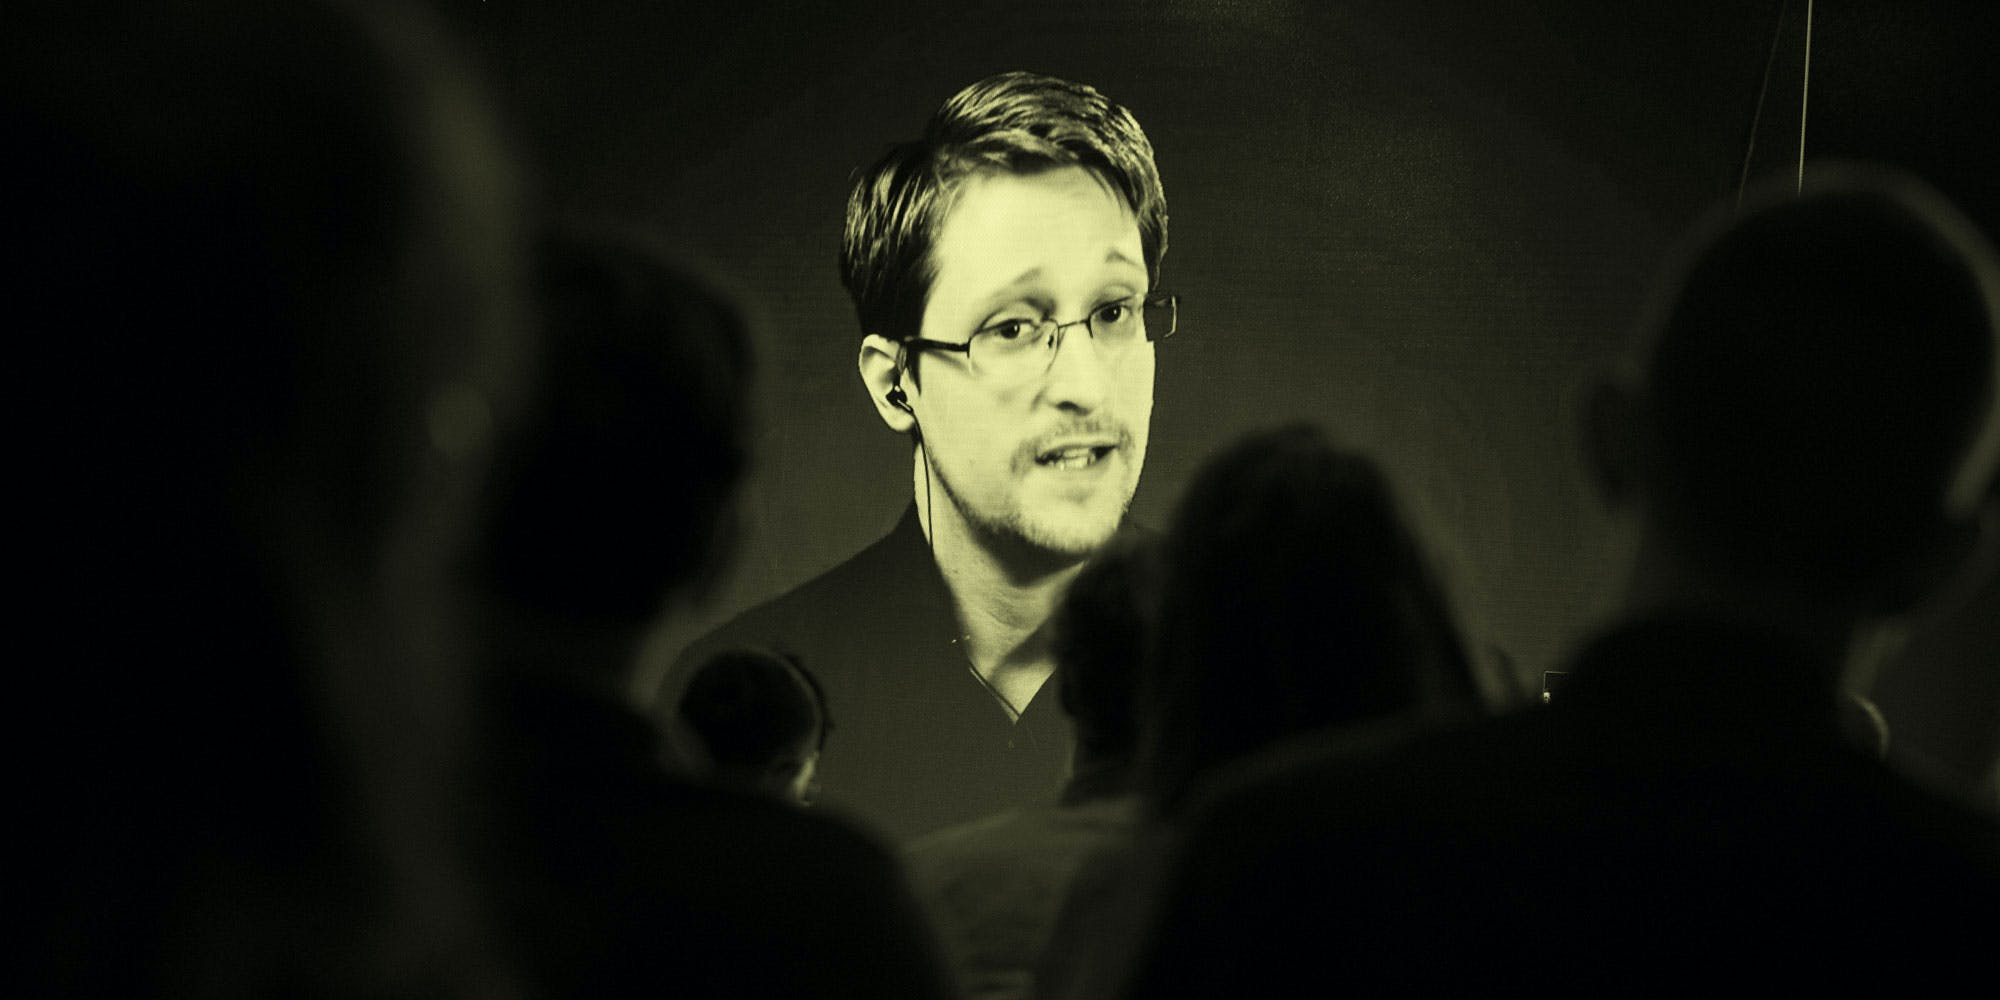 government surveillance and eduard snowden When nsa whistleblower edward snowden leaked details of massive government surveillance programs in 2013, he ignited a raging debate over digital privacy.